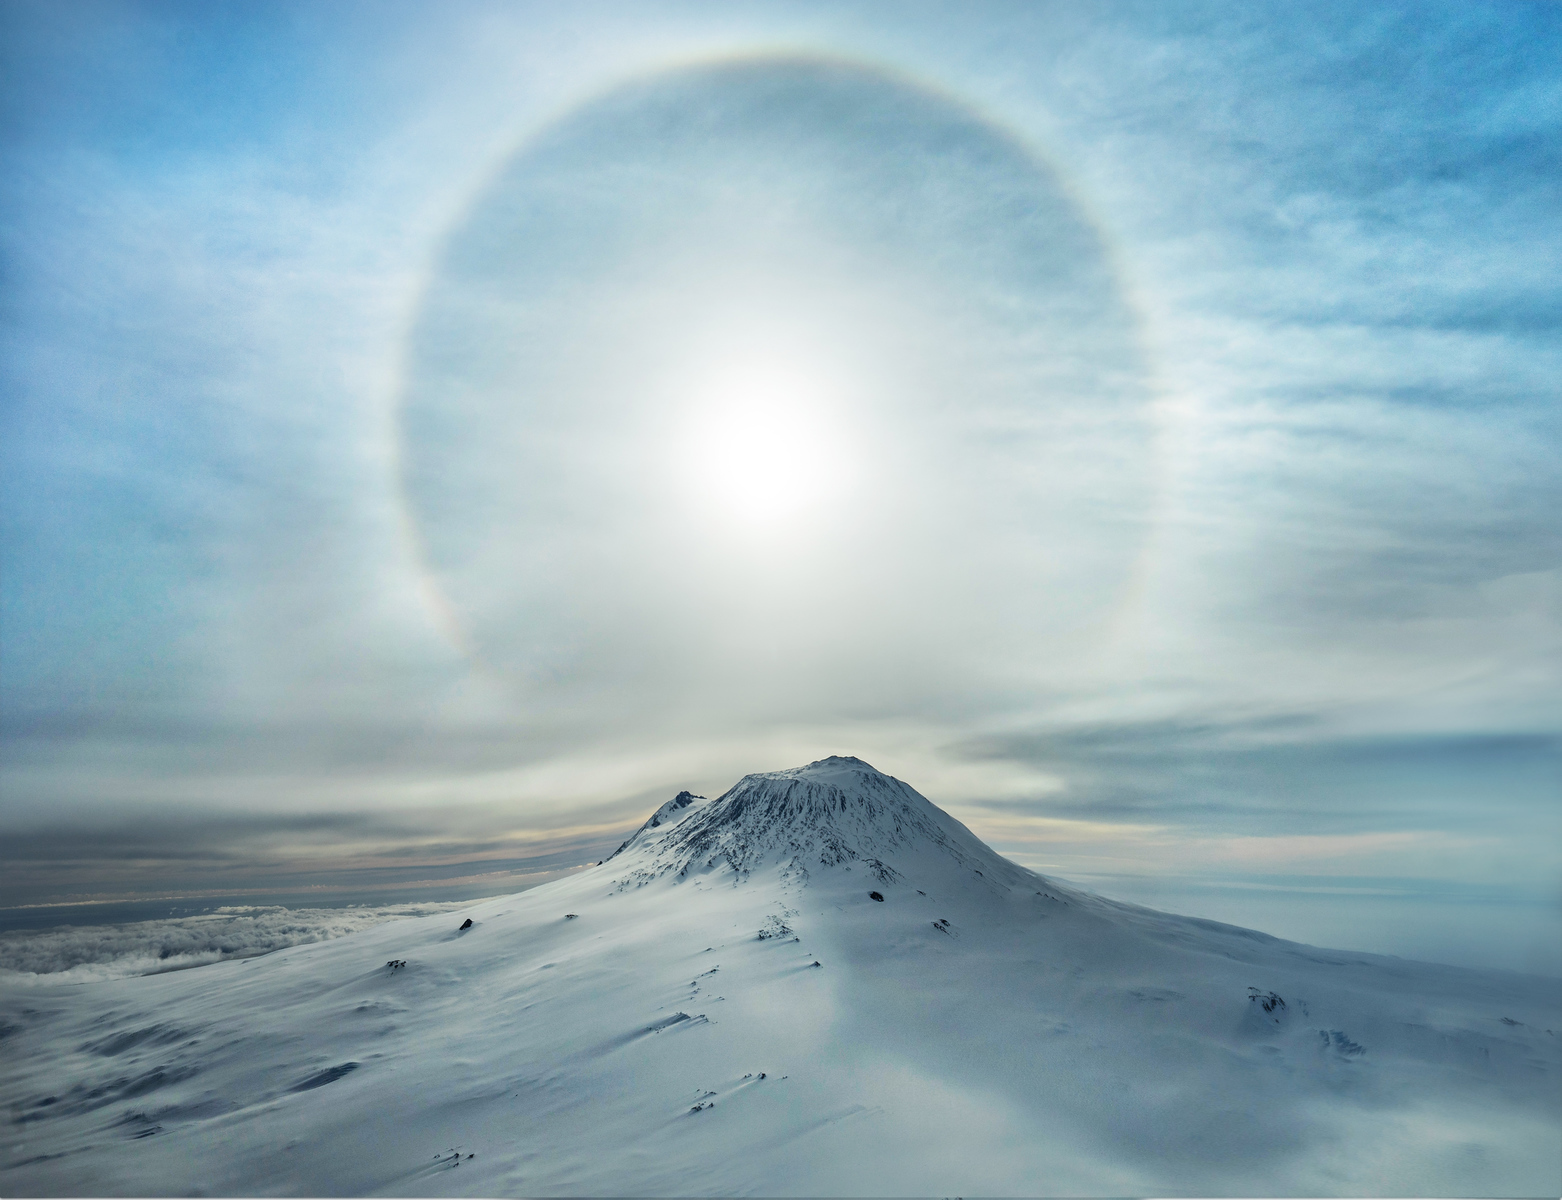 06%20-%20Trey%20Ratcliff%20-%20%22a%20polar%20sunbow%20erupts%20over%20an%20iced%20volcano%22-X3.jpg